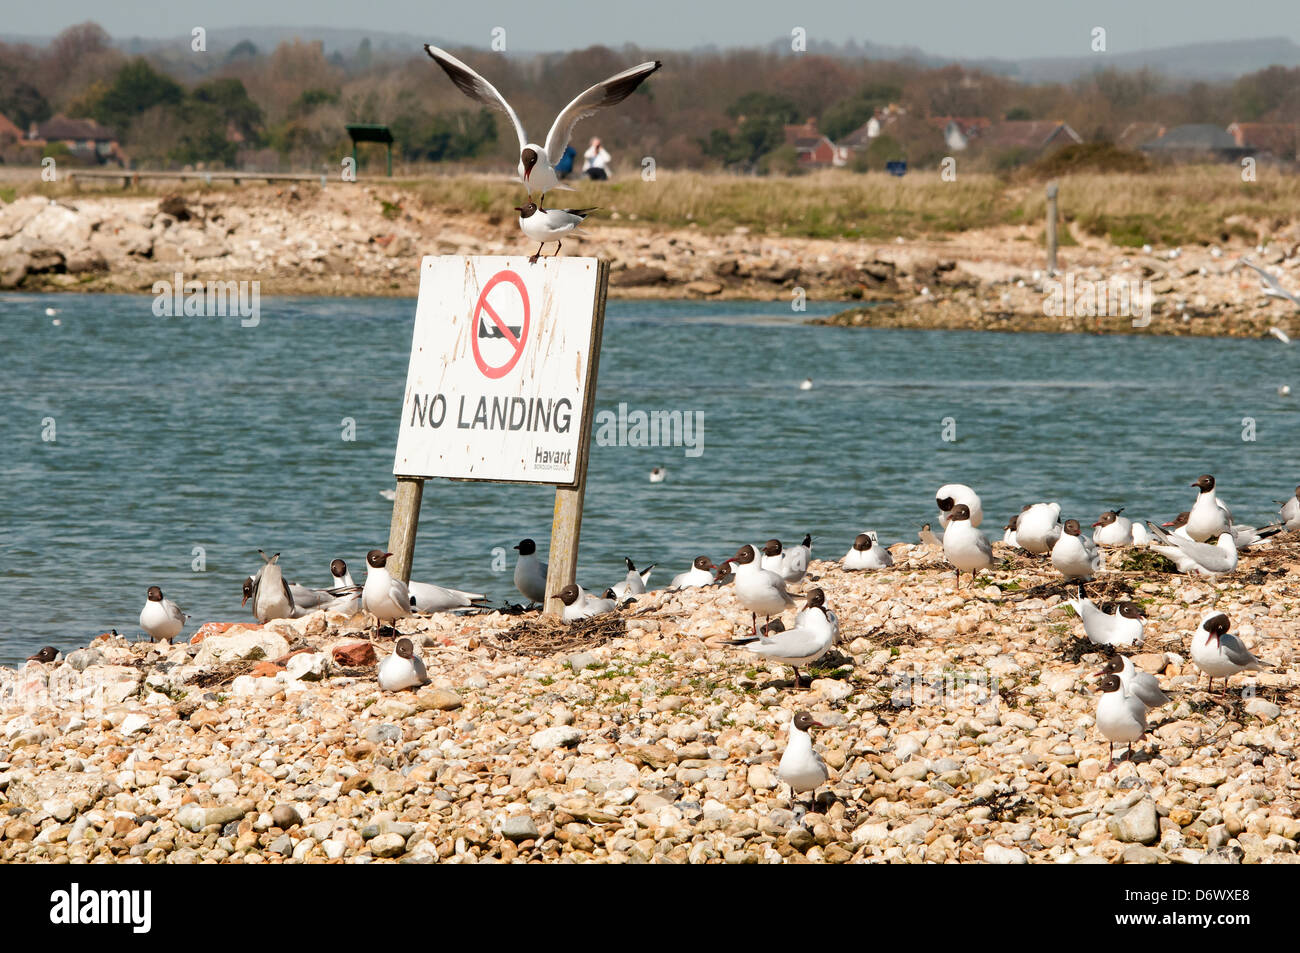 common black headed gulls nesting on protected area within Hayling Island nature reserve - Stock Image